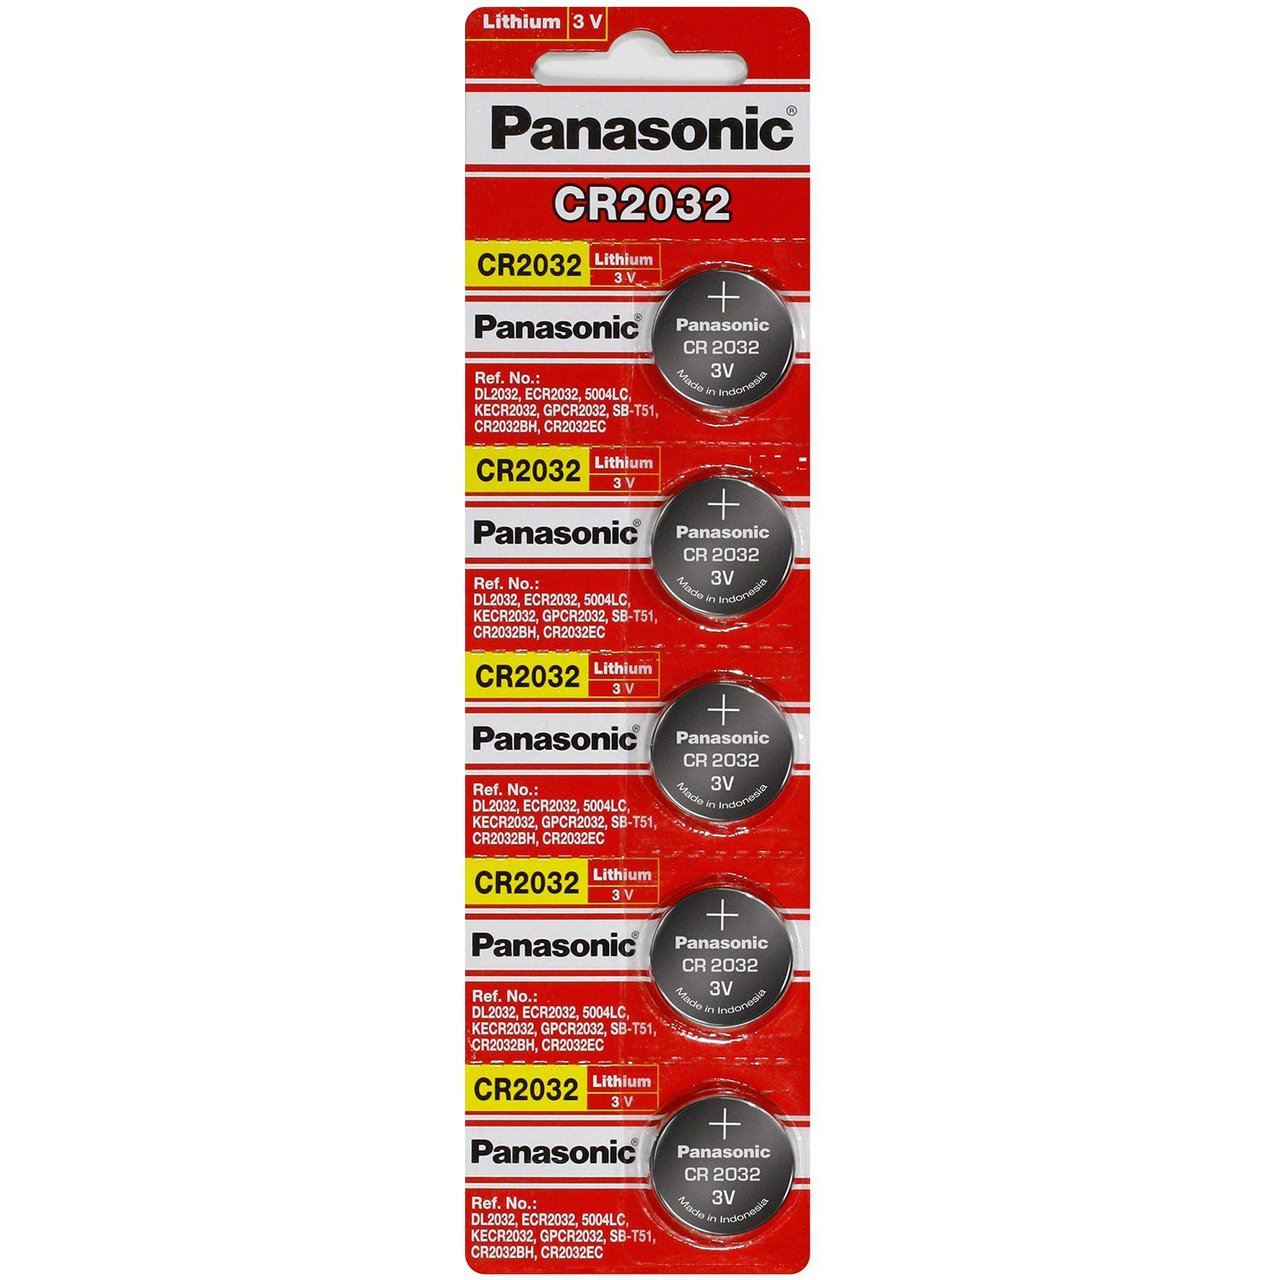 Panasonic CR2032 3V Lithium Coin Battery - 5 Pack + FREE SHIPPING!